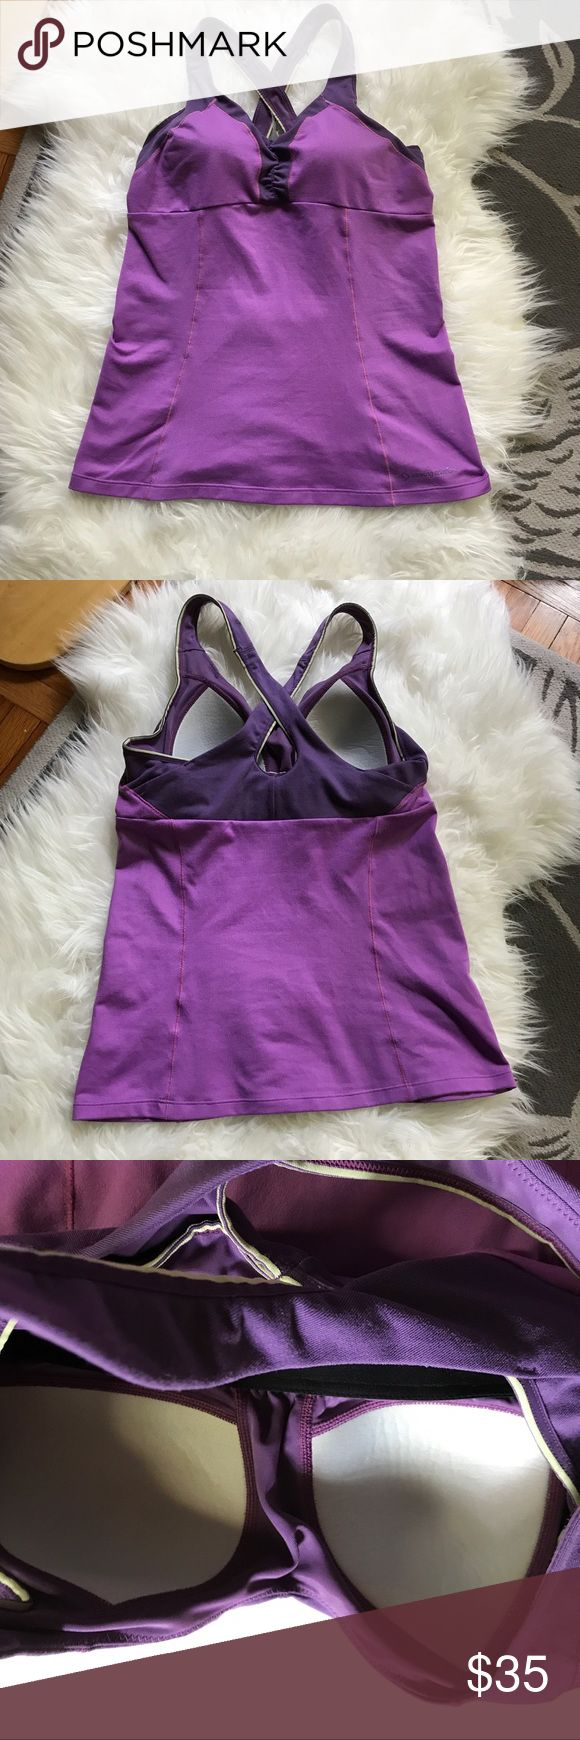 Moving Comfort Built-in Bra Workout Tank S 32a 32b Very good, gently used condition. This company is known for their excellent sports bras. This tank has a built in bra and is sized small-petite with the tag specifying that it will fit a 32a-32b bra size. Offers welcome, no trades. Moving Comfort Tops Tank Tops